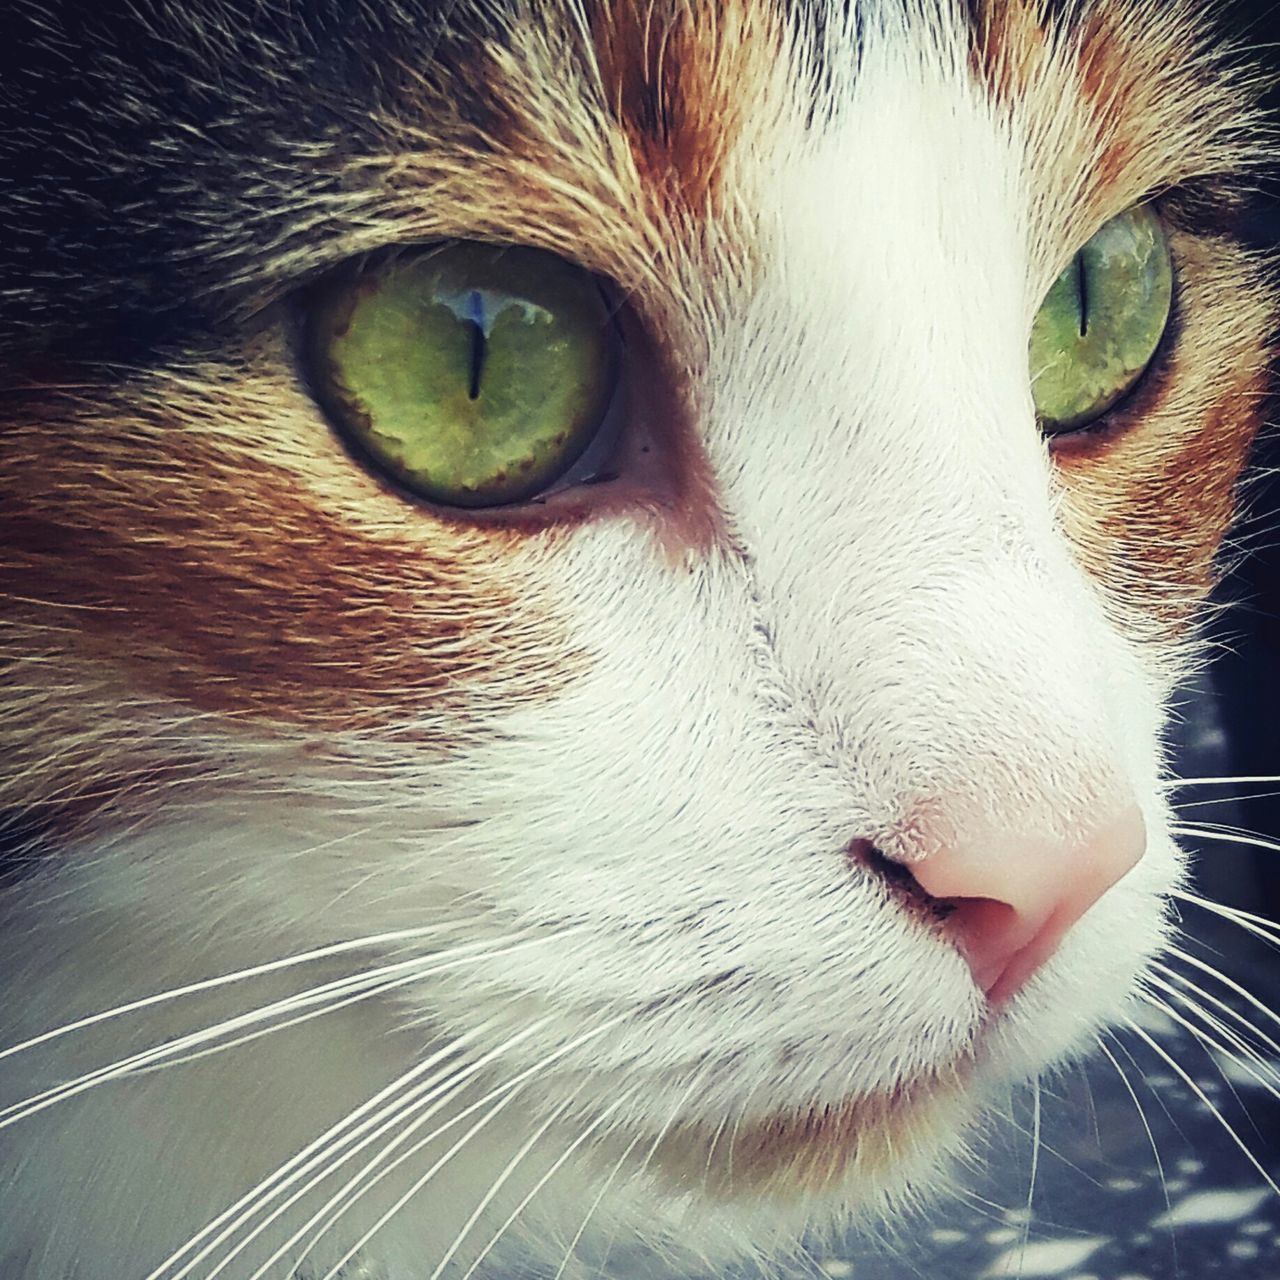 Pets Domestic Cat Domestic Animals Animal Head  Mammal Animal Themes Cateyes Cats One Animal Photographer Photography Model Cute Cute Pets cat Cats Of EyeEm Cat Photography Cat Portrait Feline Animal Eye Whisker Close-up No People Day Eyem Select